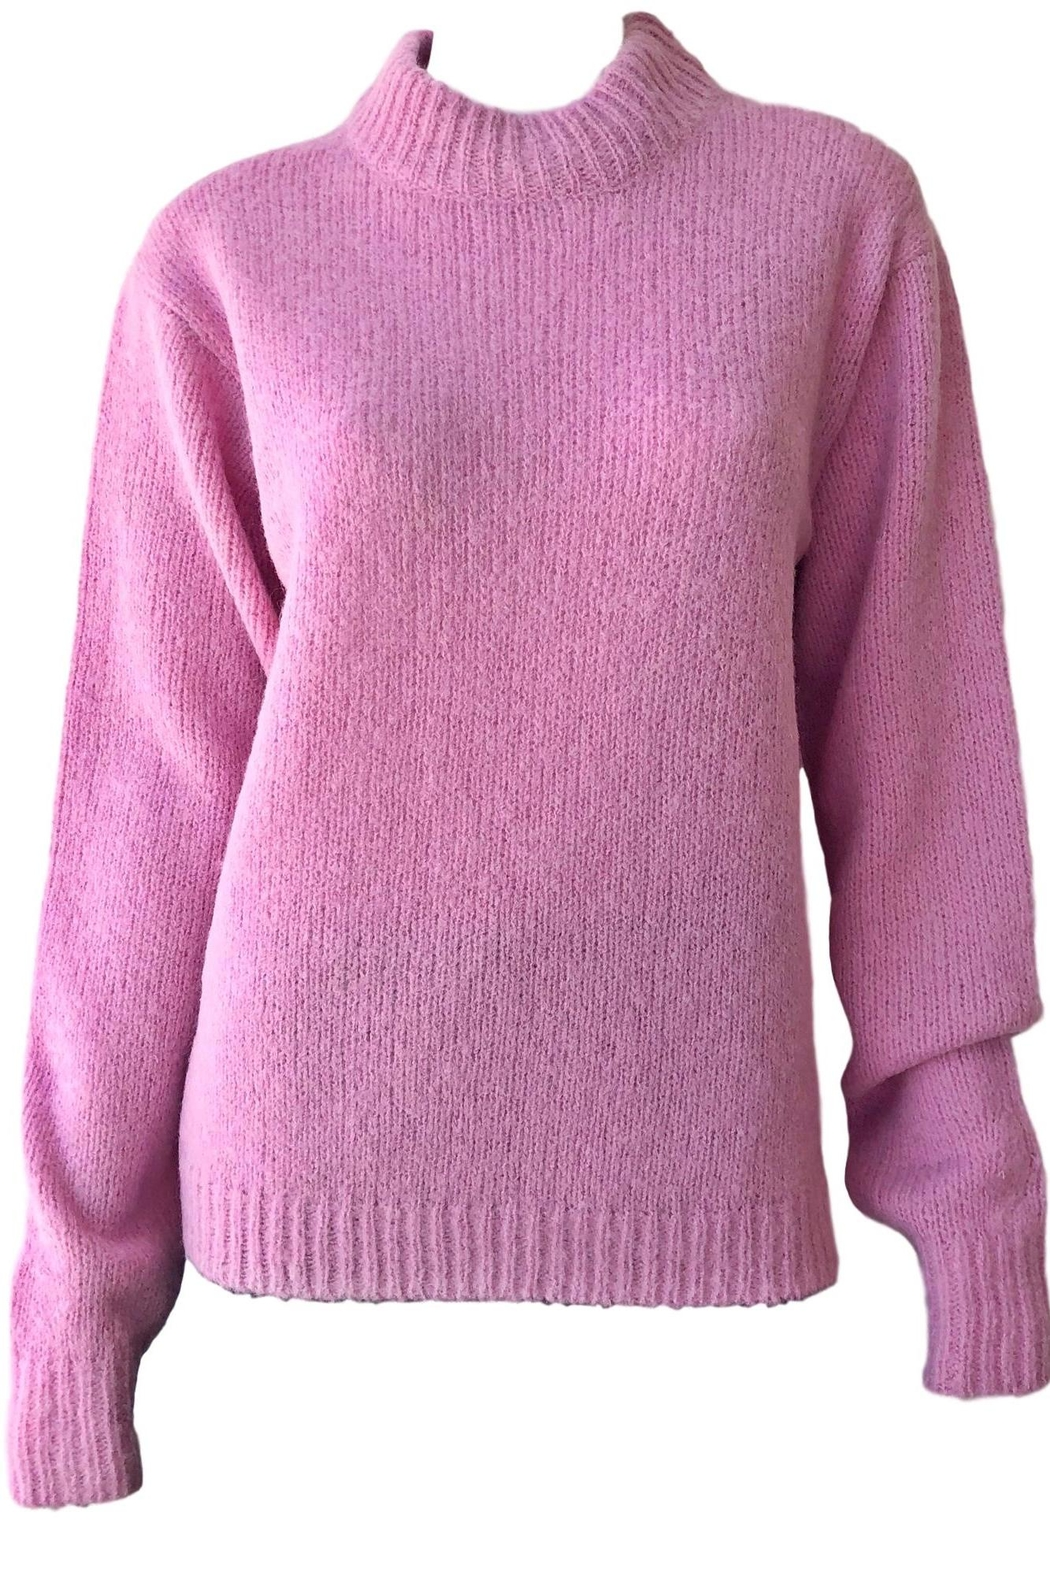 Tibi Cozette Pullover Sweater - Side Cropped Image